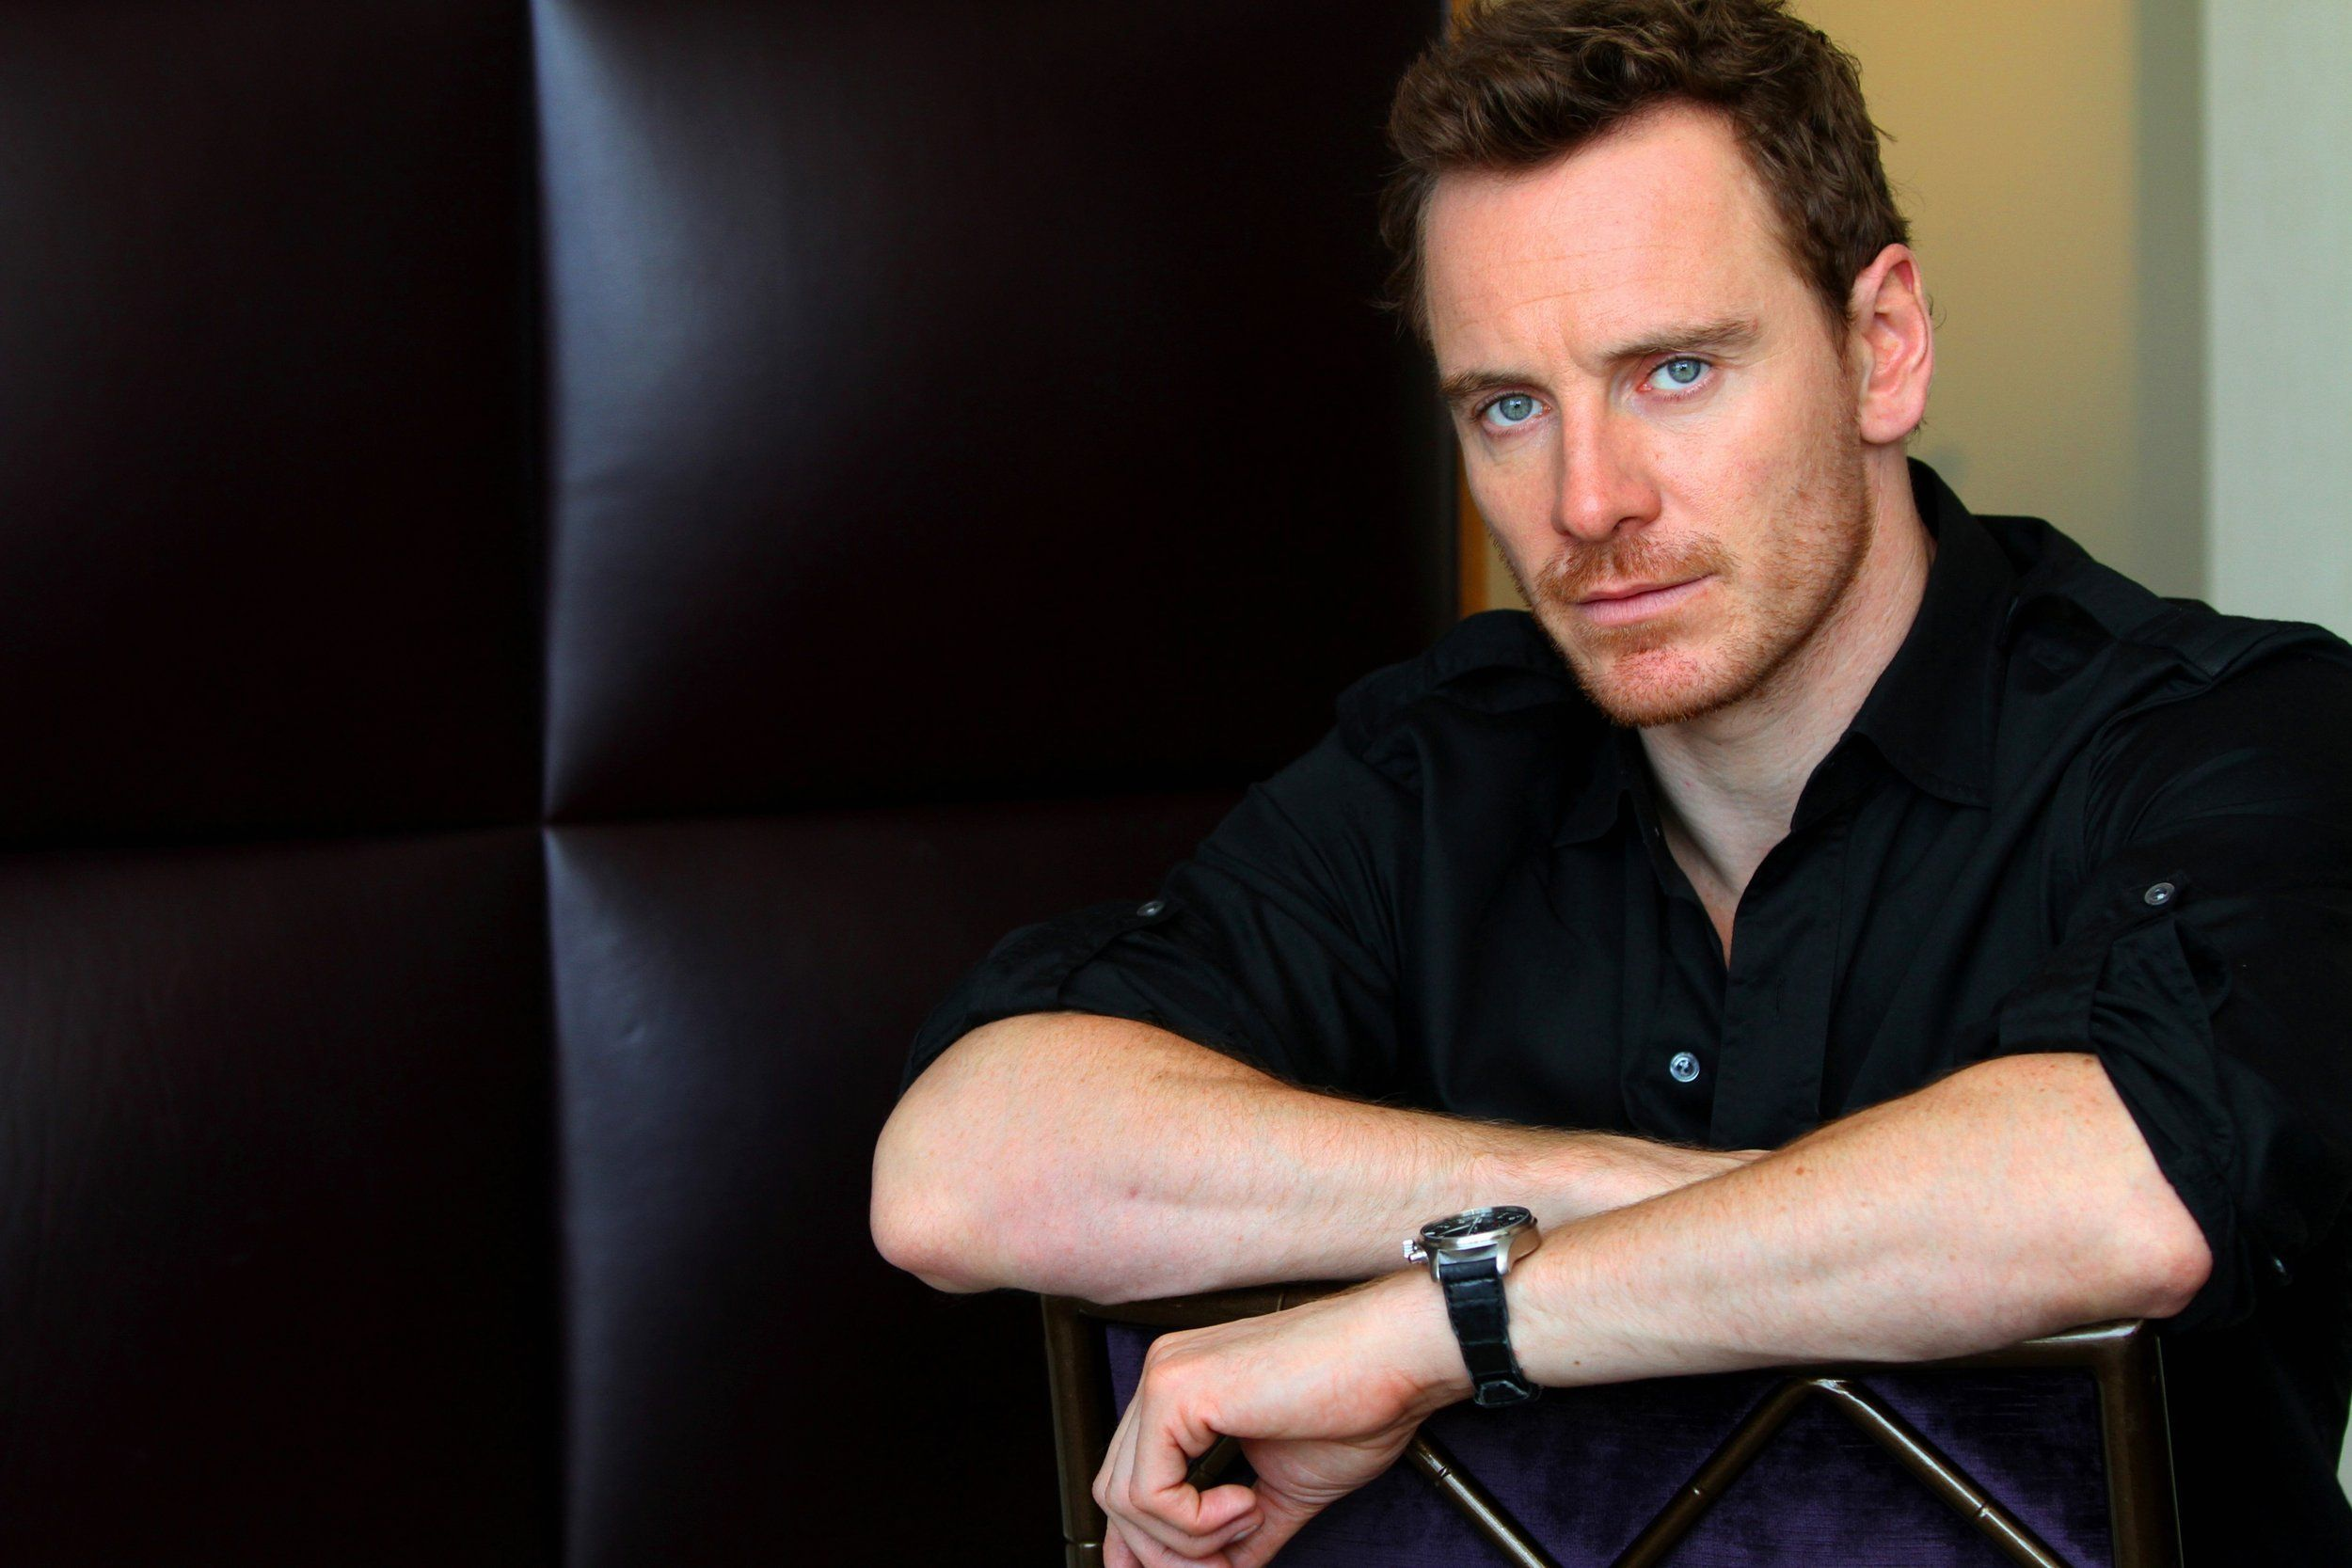 23+ Magneto Michael Fassbender Photoshoot Pictures